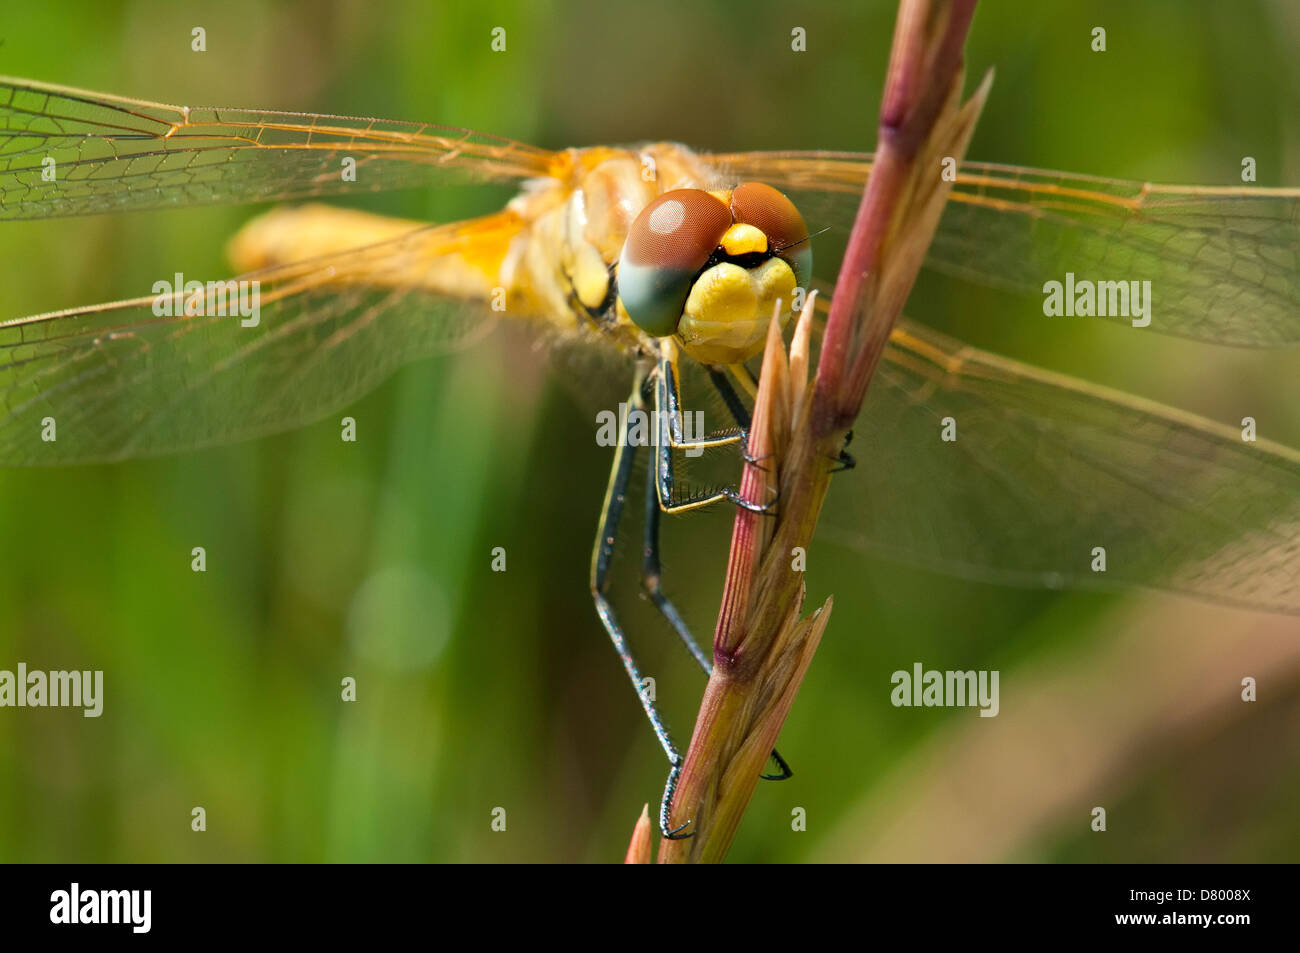 Dragonfly Close-up - Stock Image